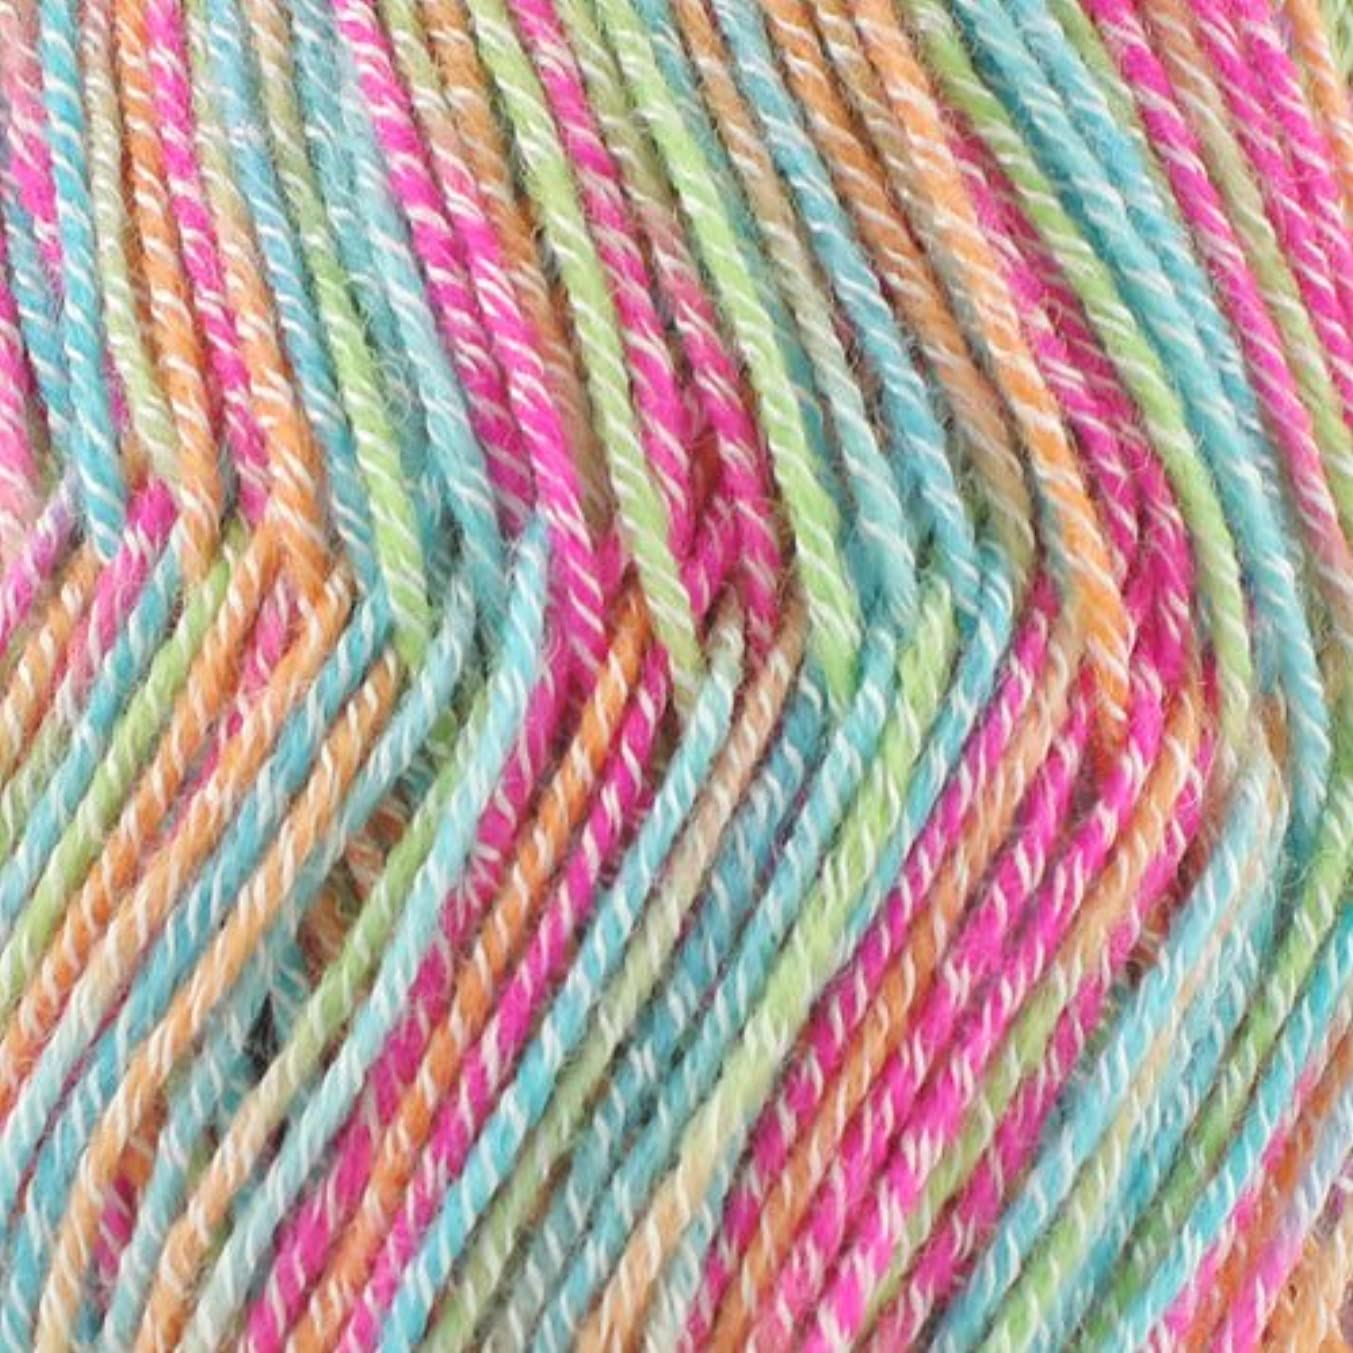 Super Fine Weight Soft and Slim Yarn Color 988 Rainbow Sprinkles - BambooMN - 2 Skeins